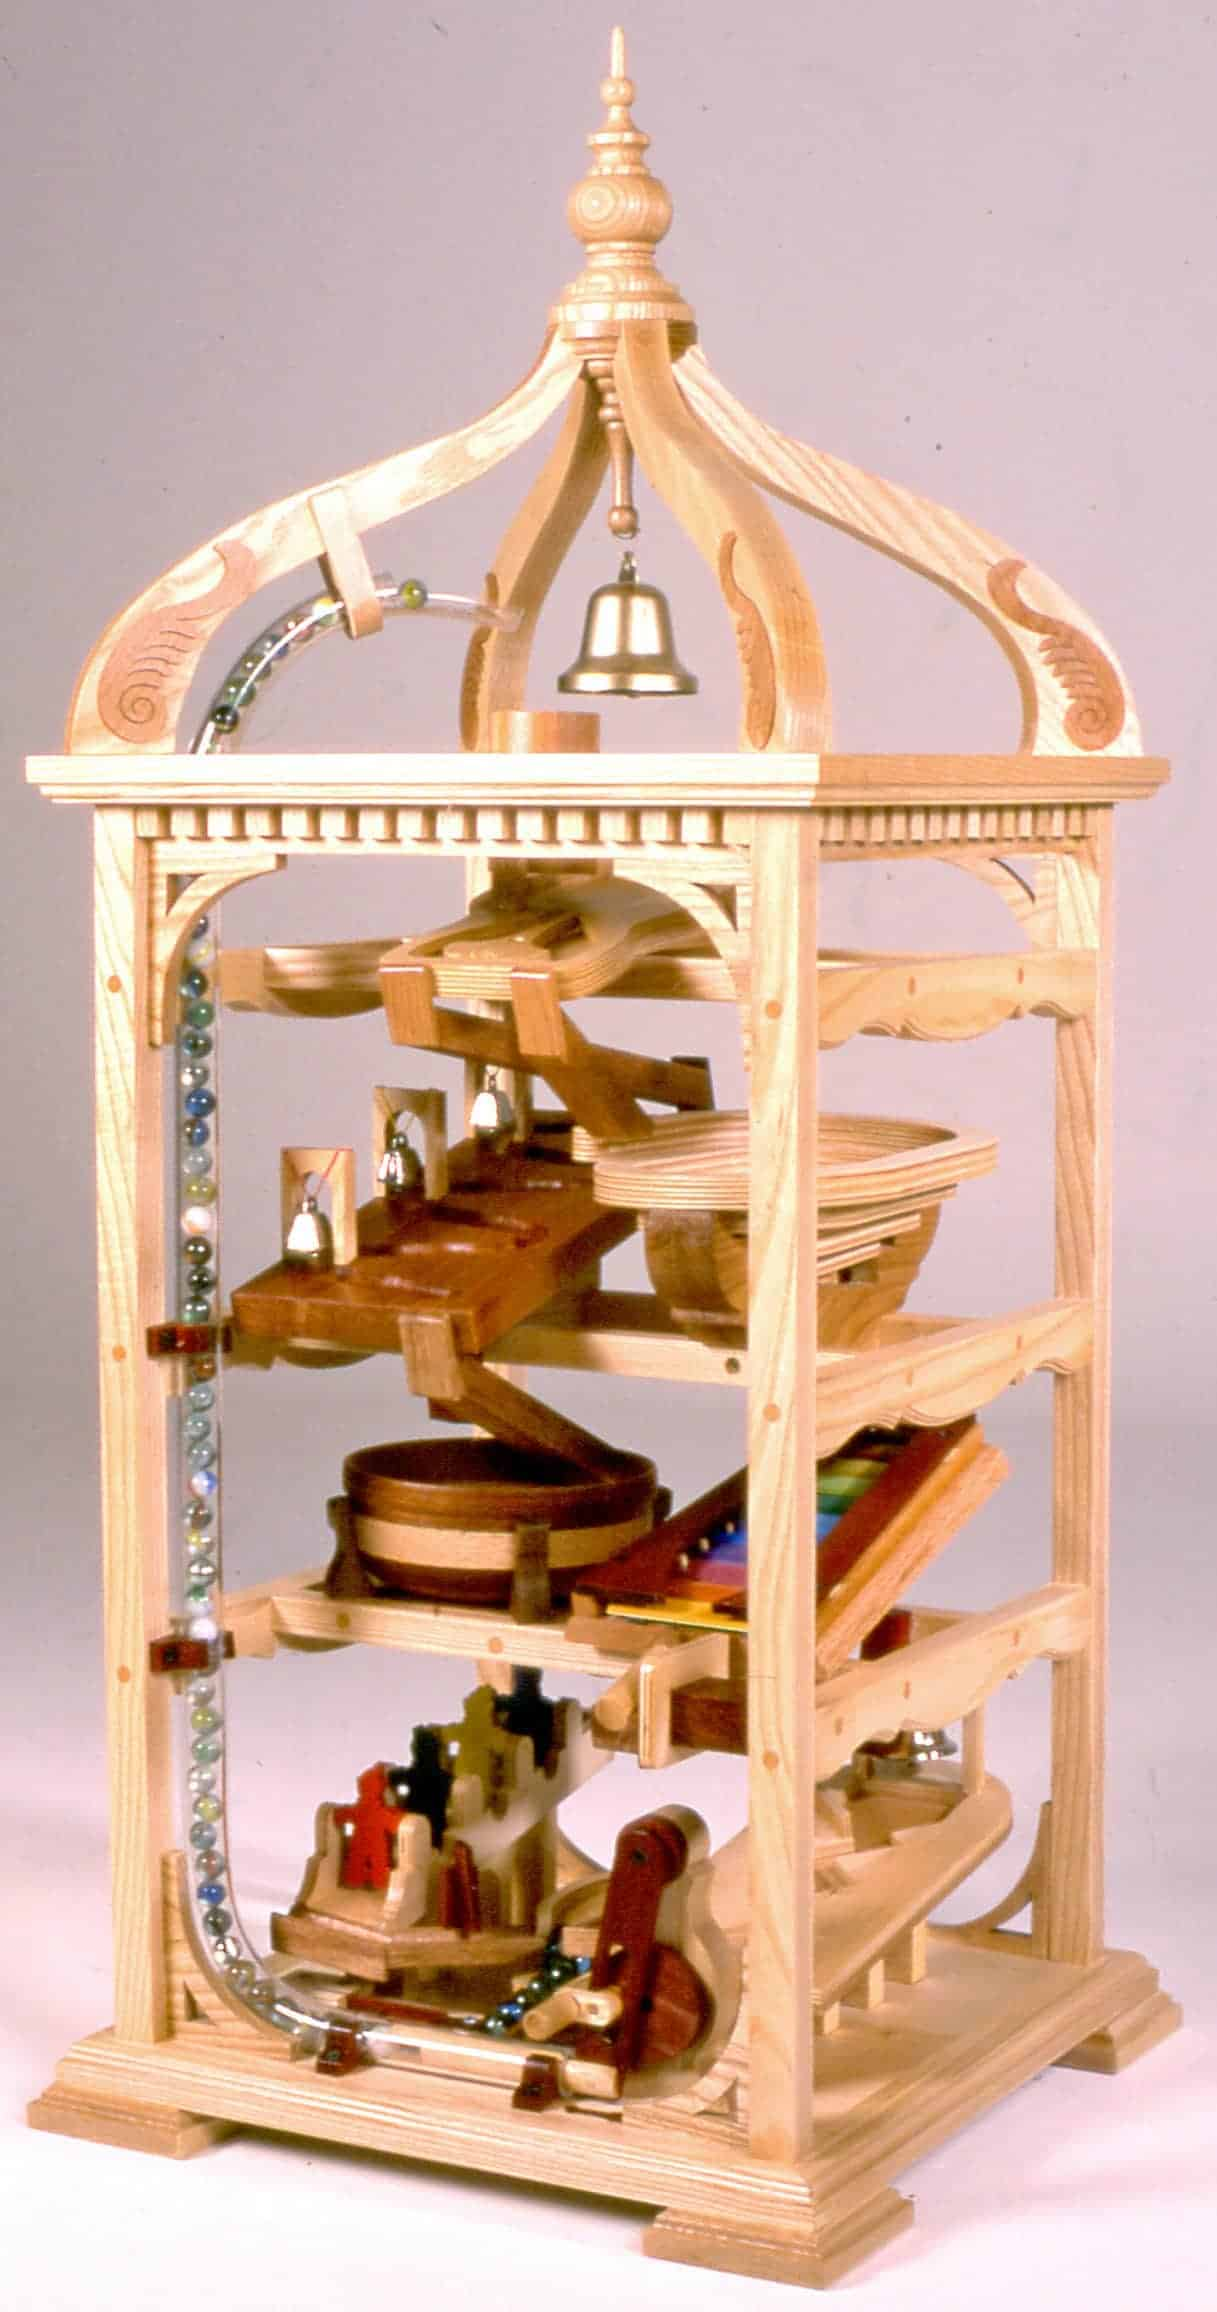 Bell Tower Marble Machine Woodworking Plan - Forest Street Designs